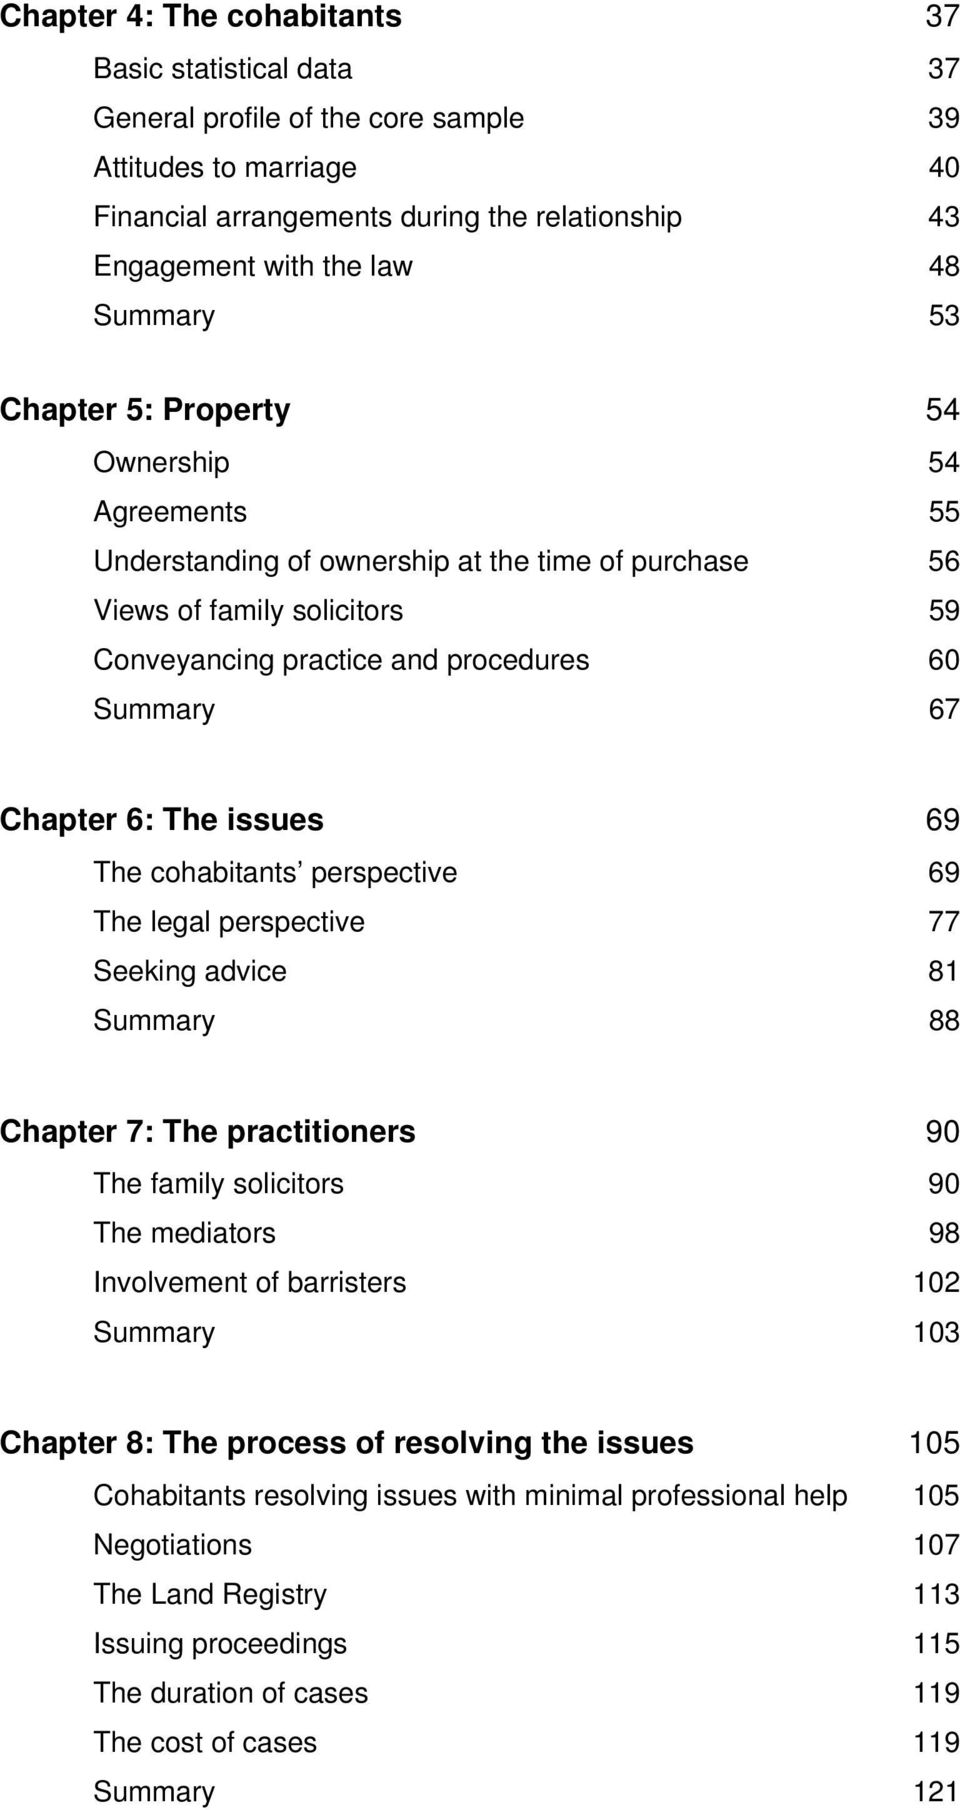 Chapter 6: The issues 69 The cohabitants perspective 69 The legal perspective 77 Seeking advice 81 Summary 88 Chapter 7: The practitioners 90 The family solicitors 90 The mediators 98 Involvement of